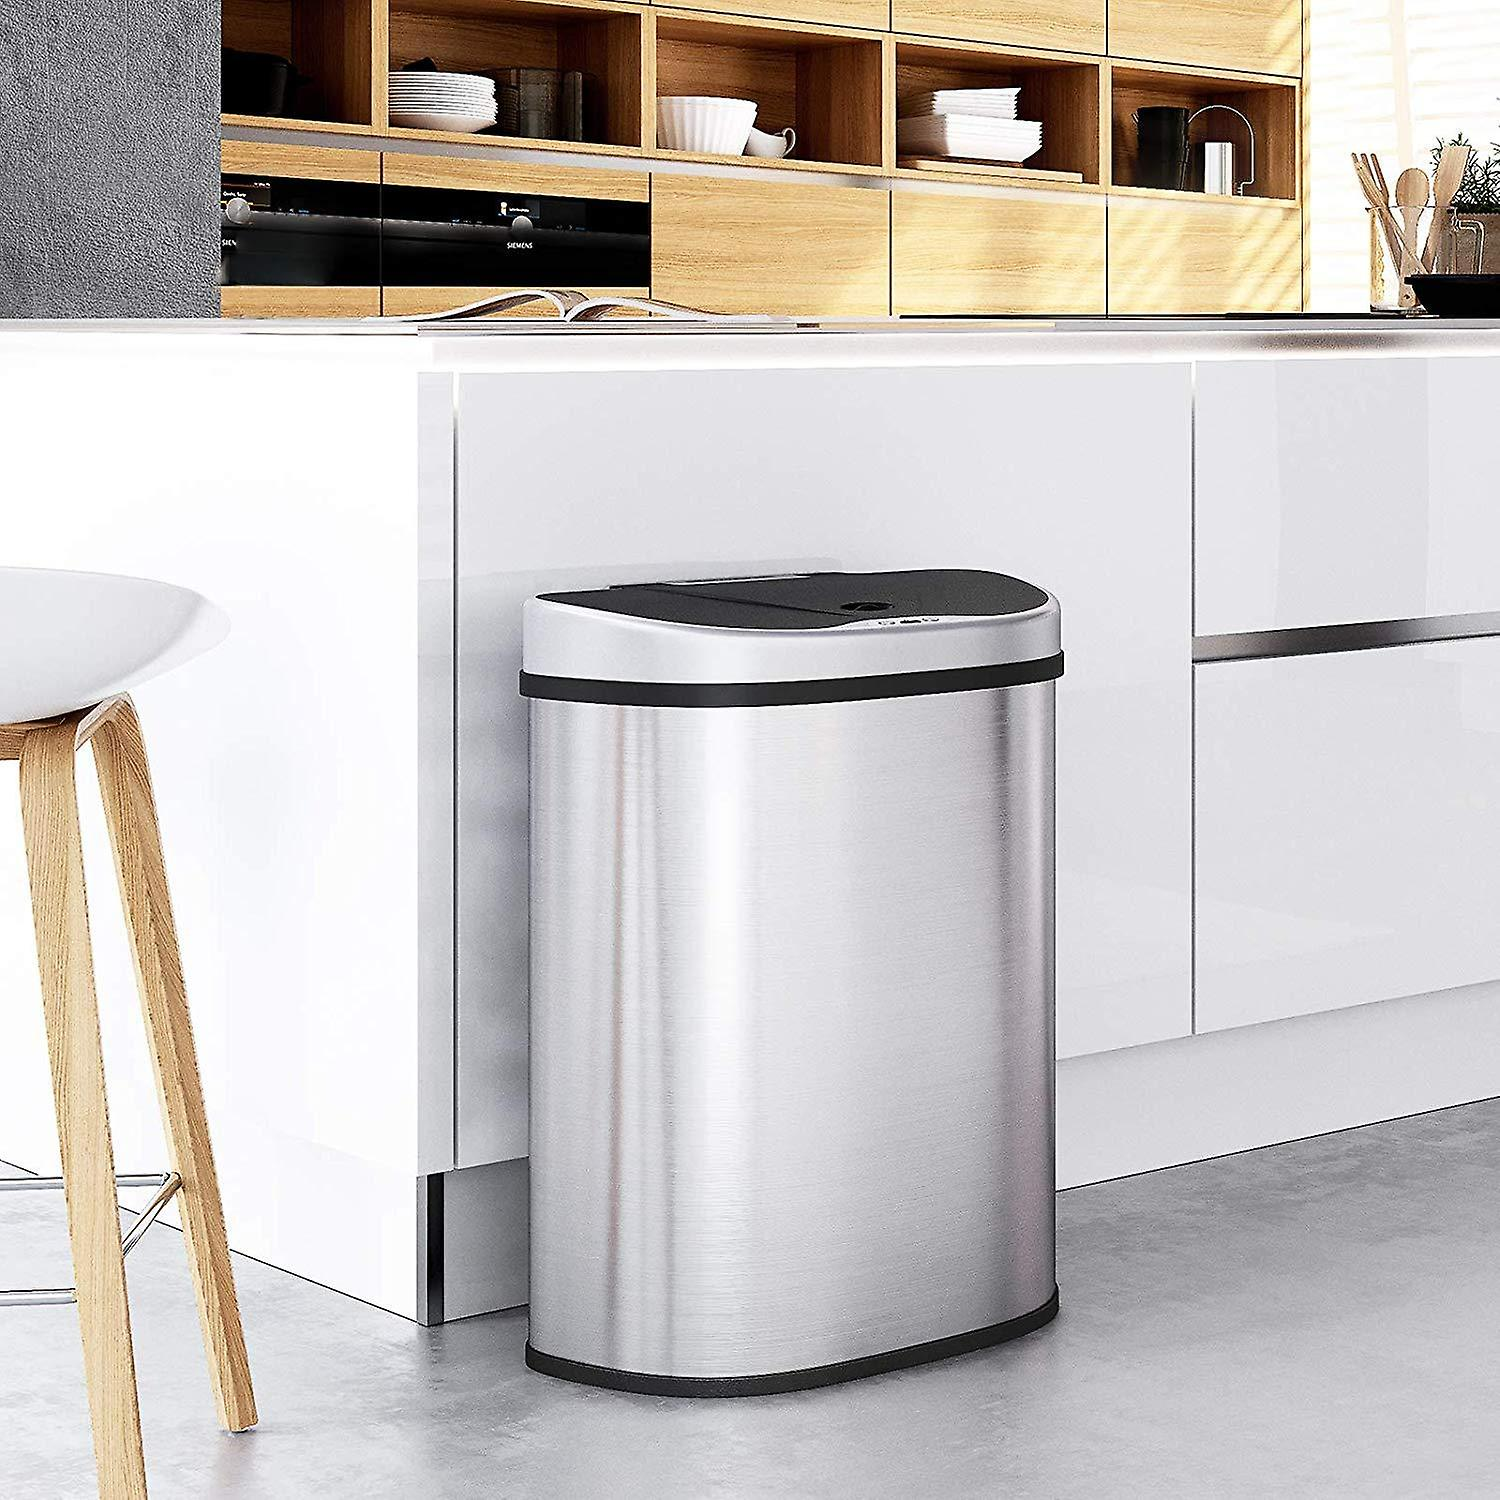 Double stainless steel waste bin with infrared sensor-2x 35l